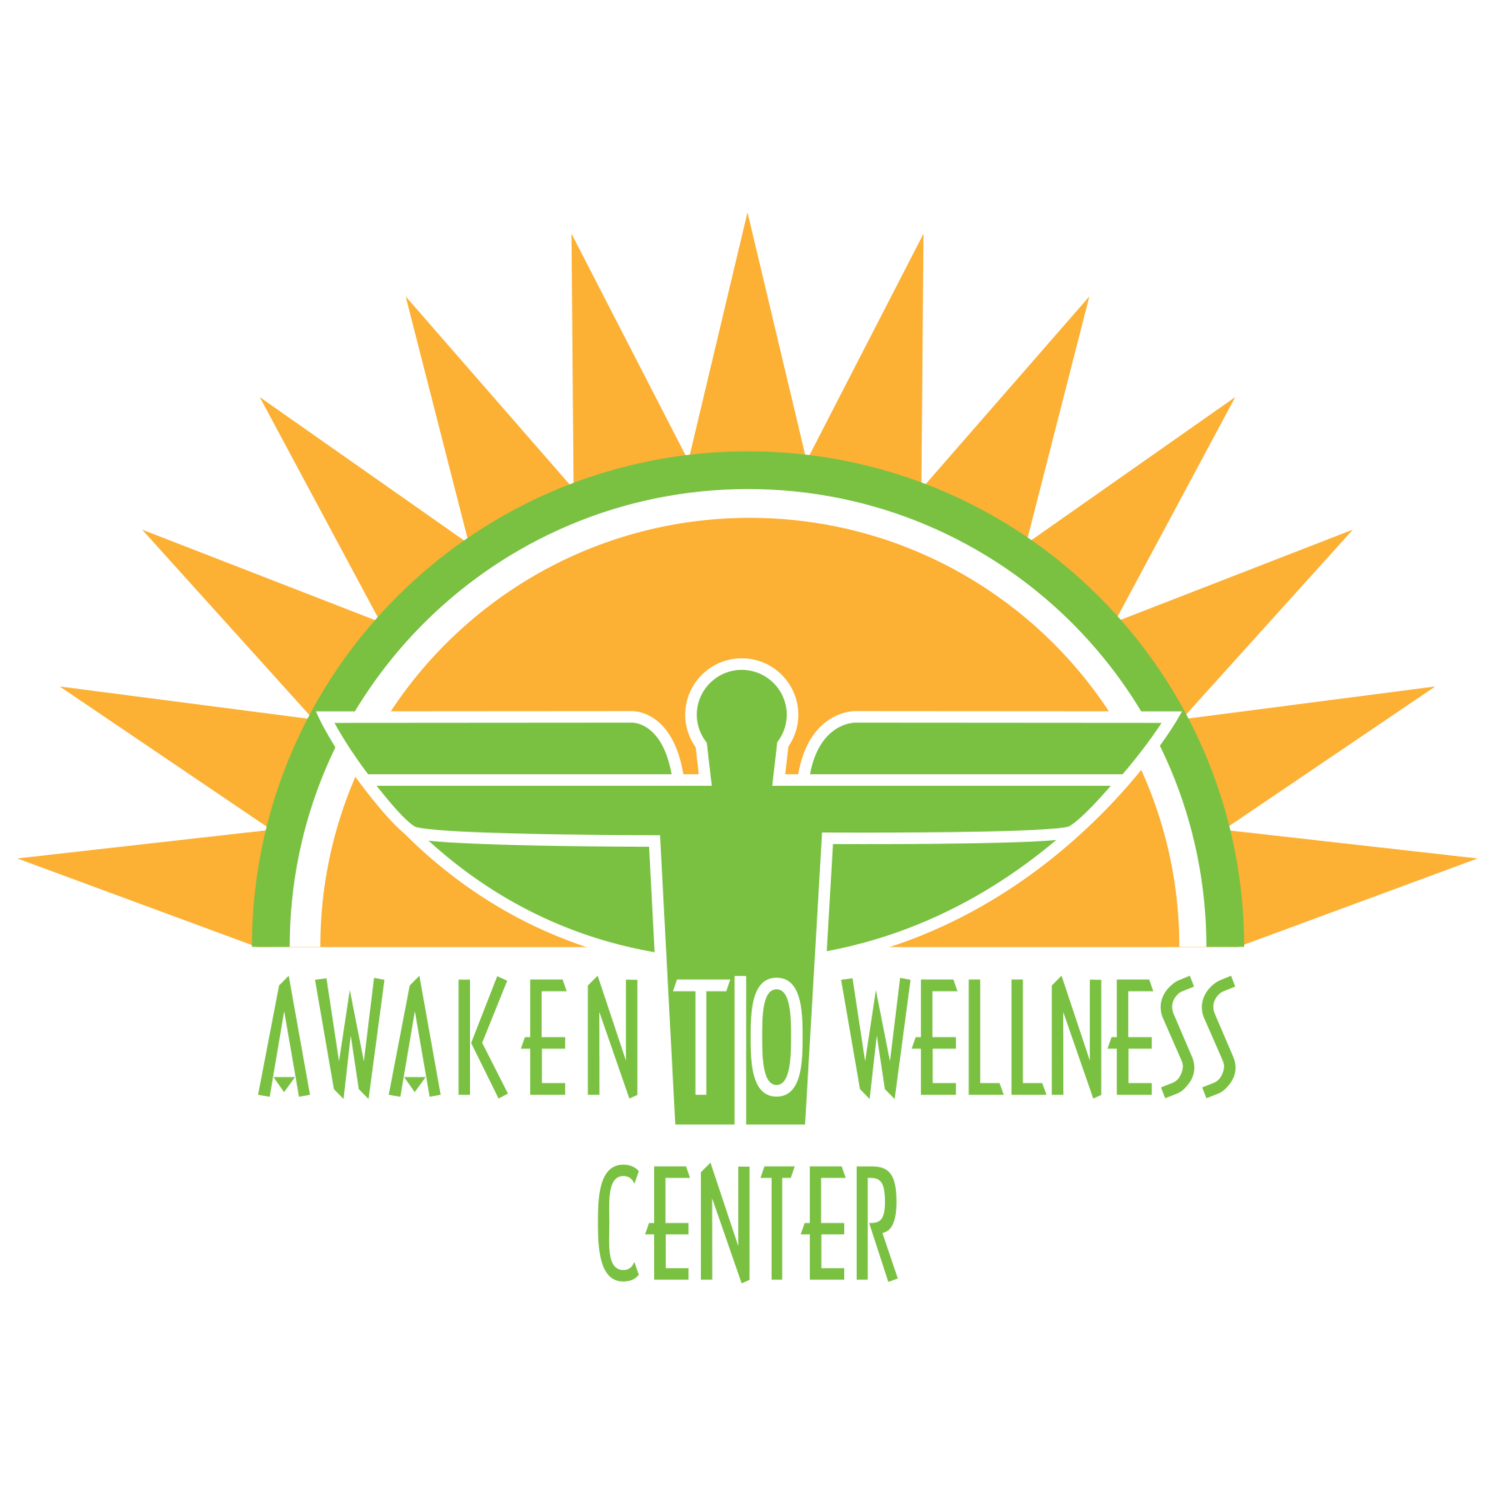 Awaken to Wellness Center